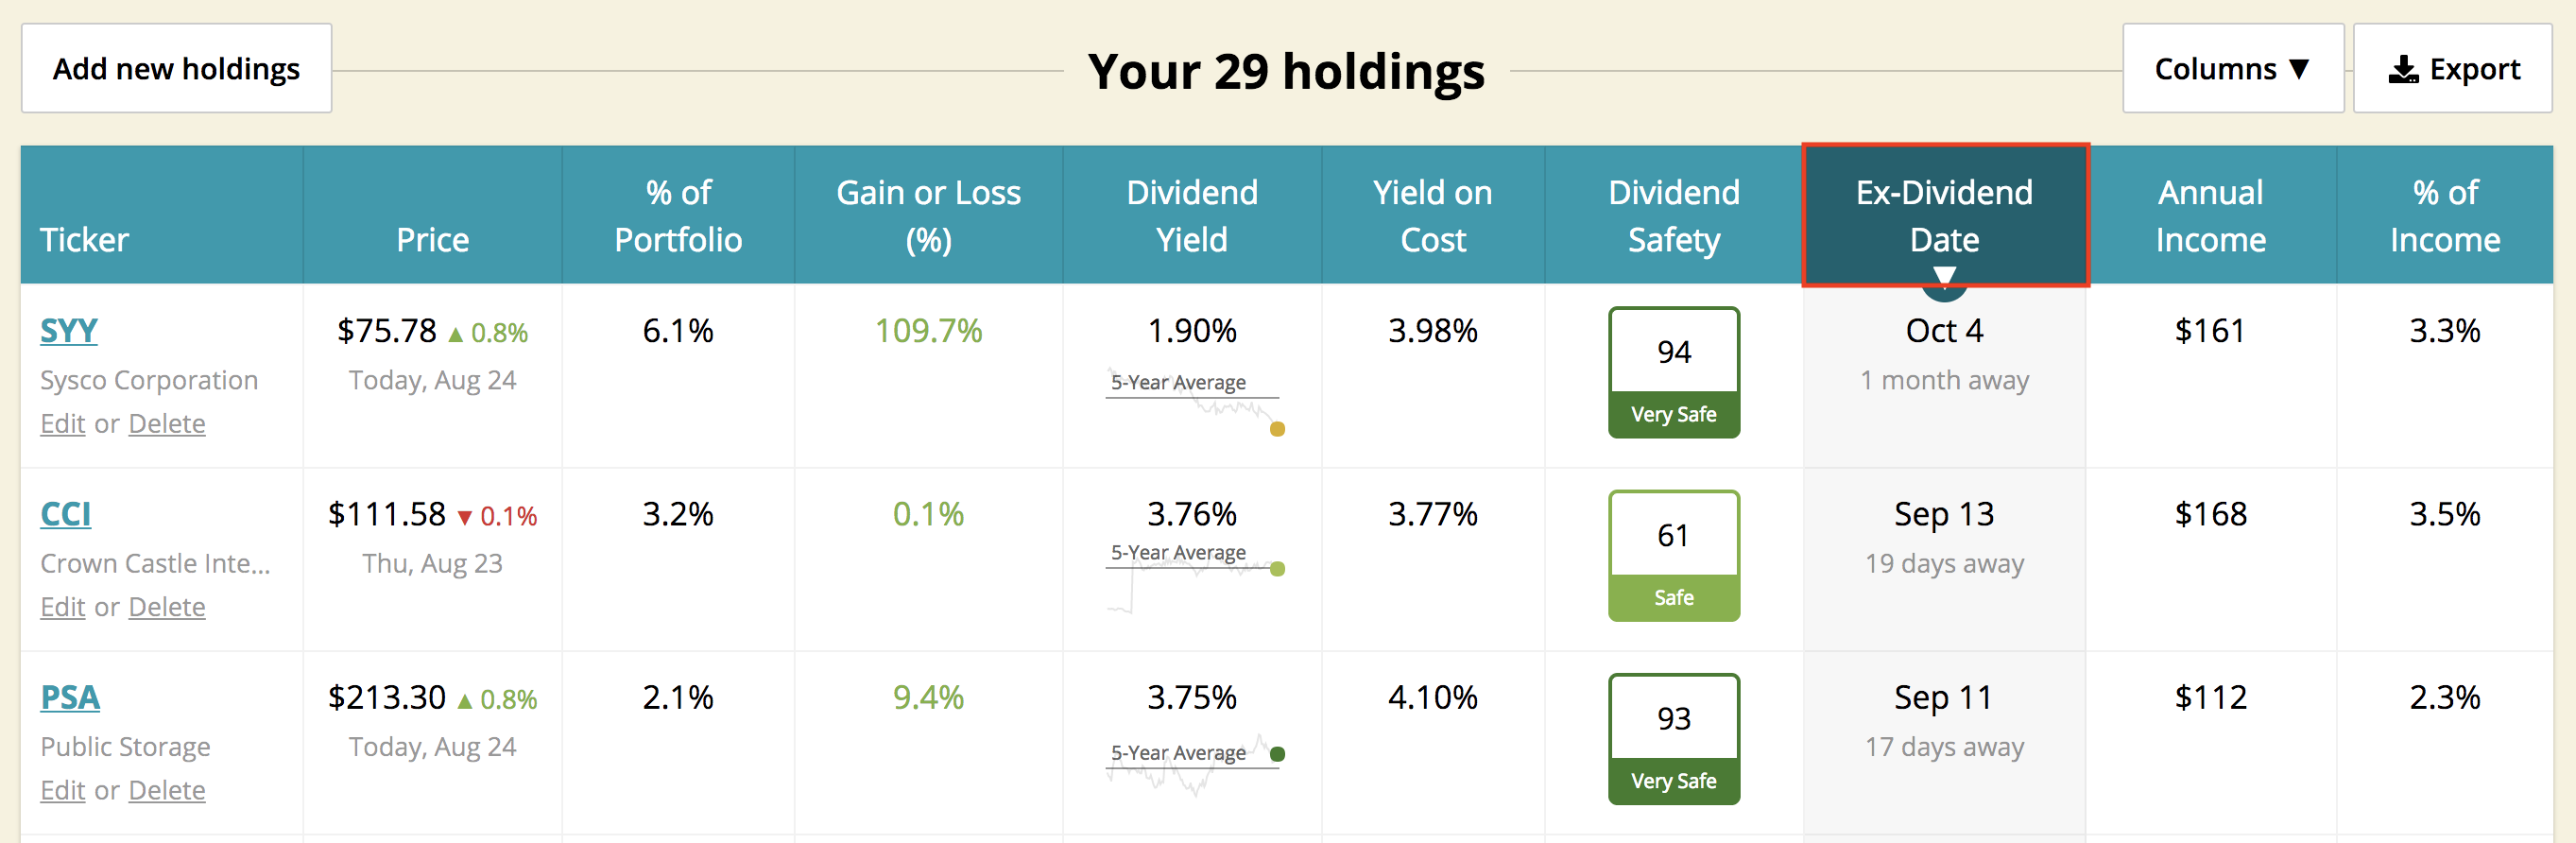 Dividend Dates Guide Ex Dividend Date, Pay Date, Date of Record ...